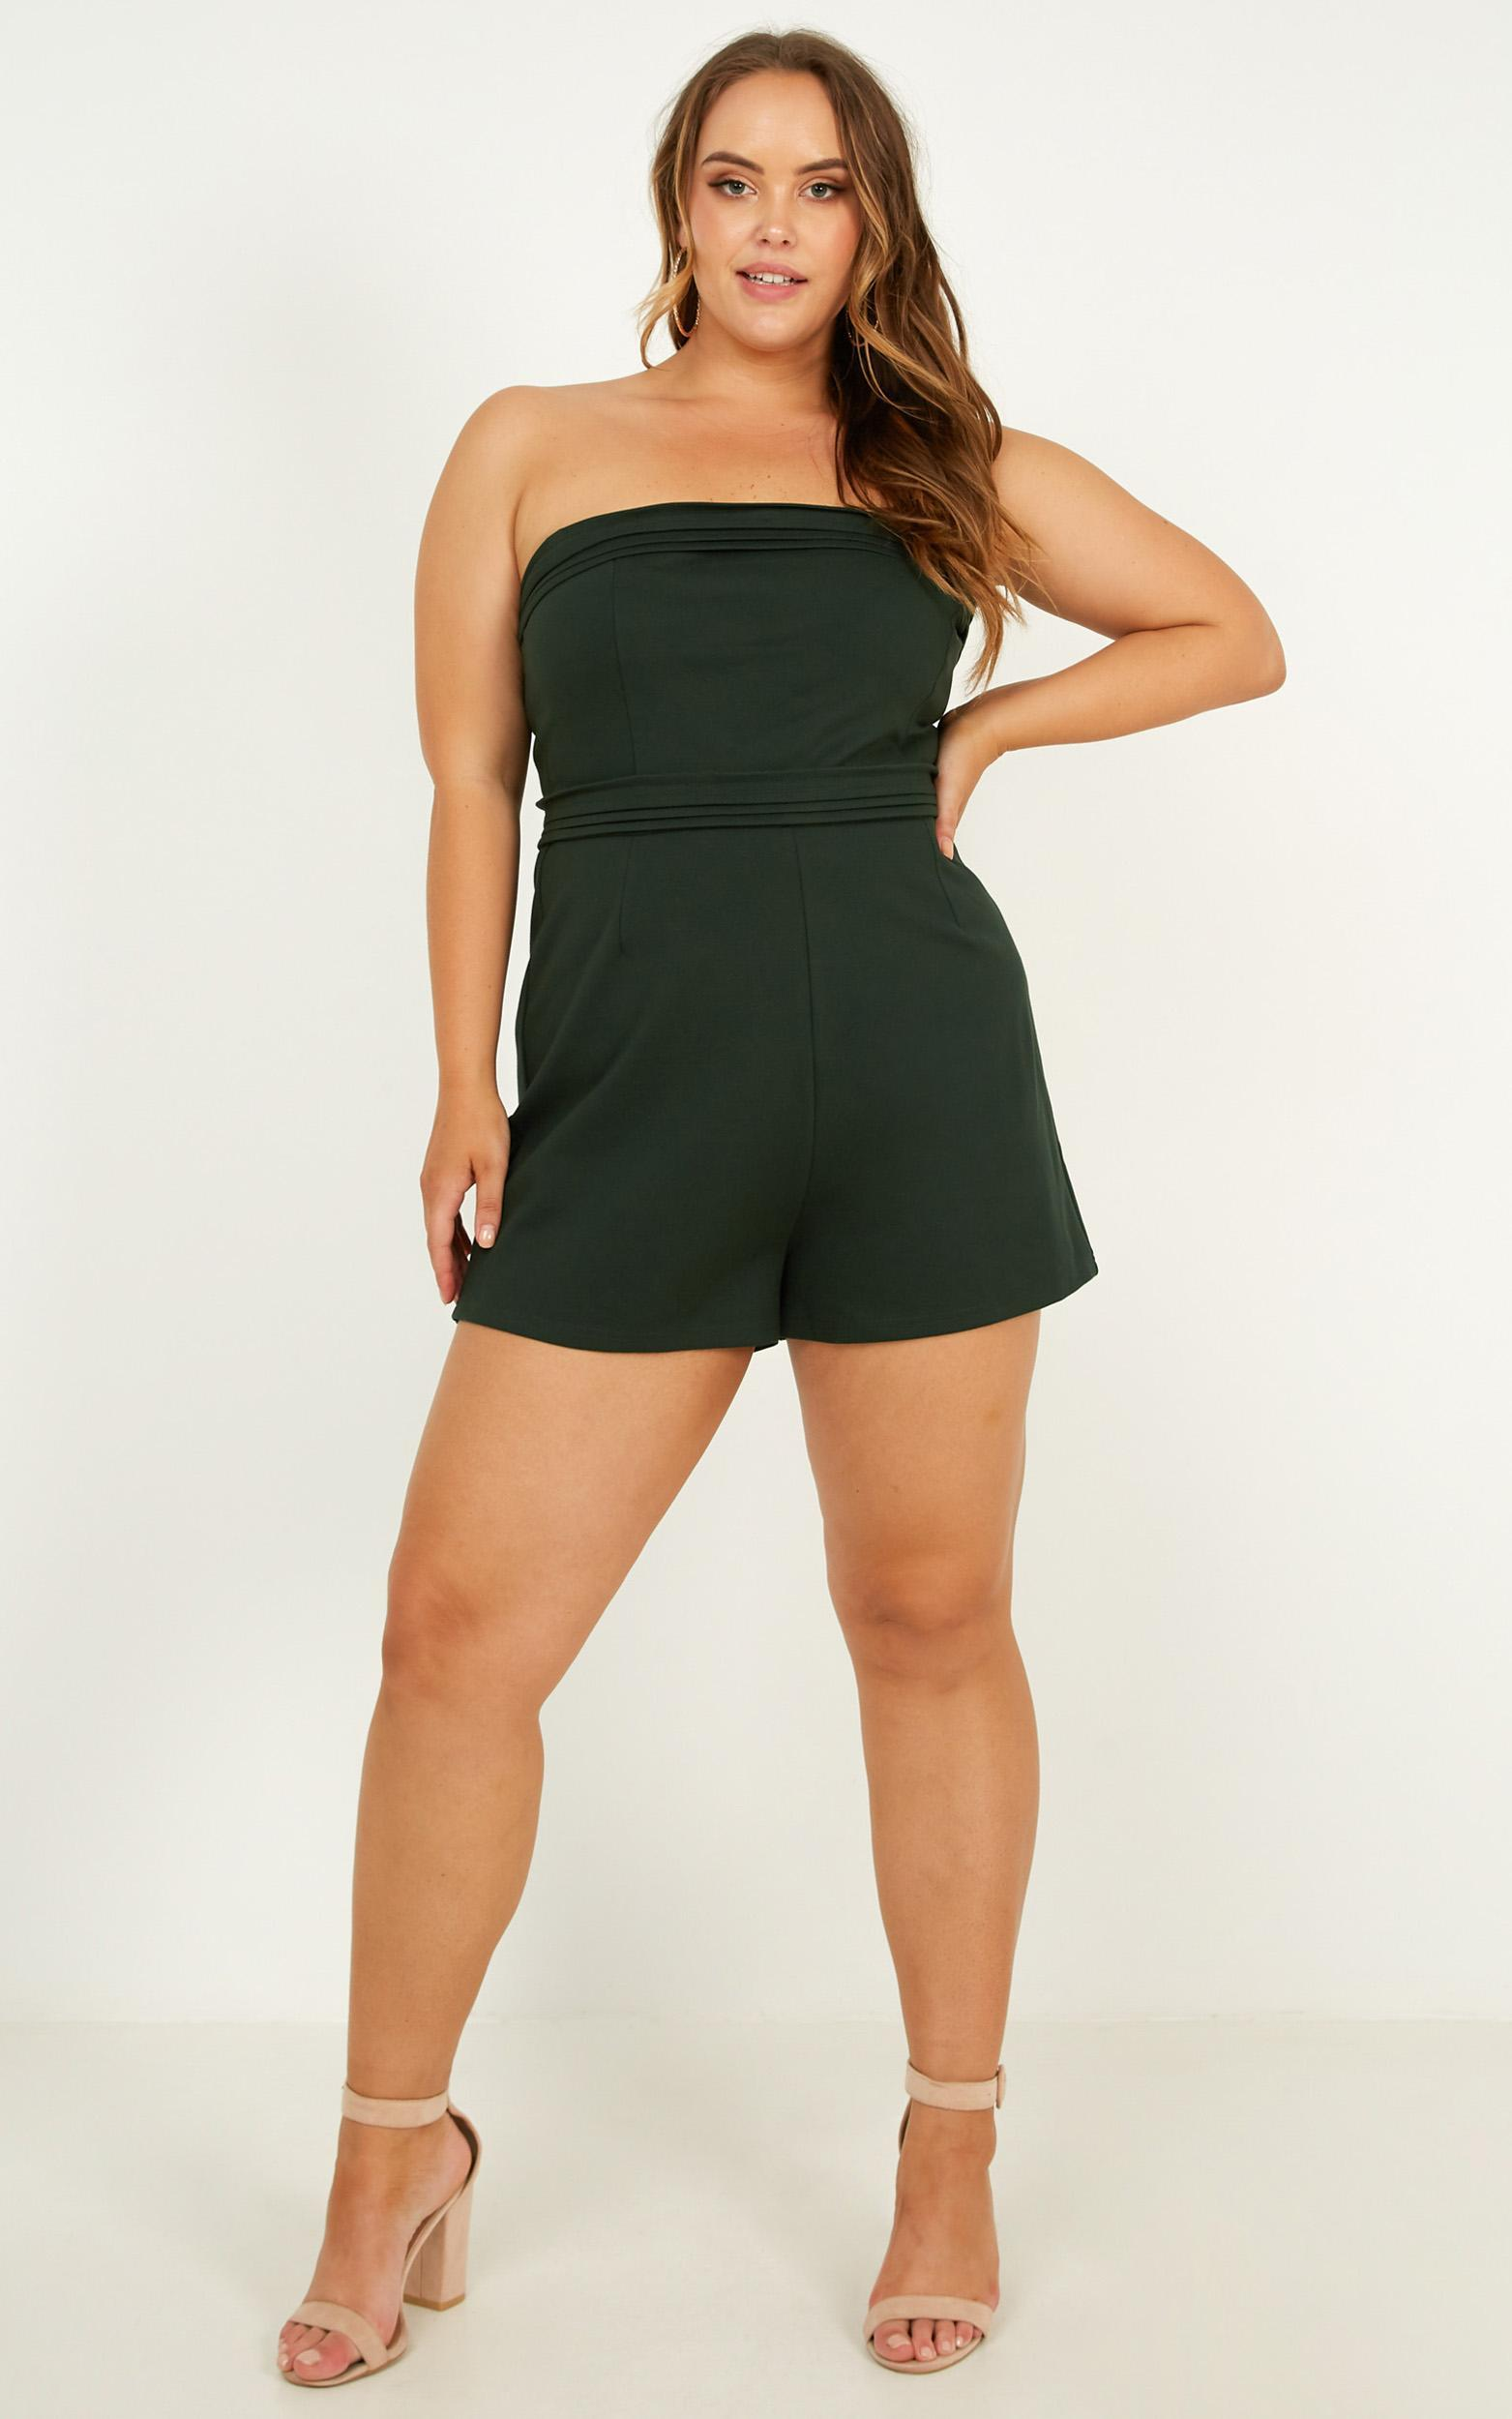 Sneaking In Playsuit in emerald - 20 (XXXXL), Green, hi-res image number null